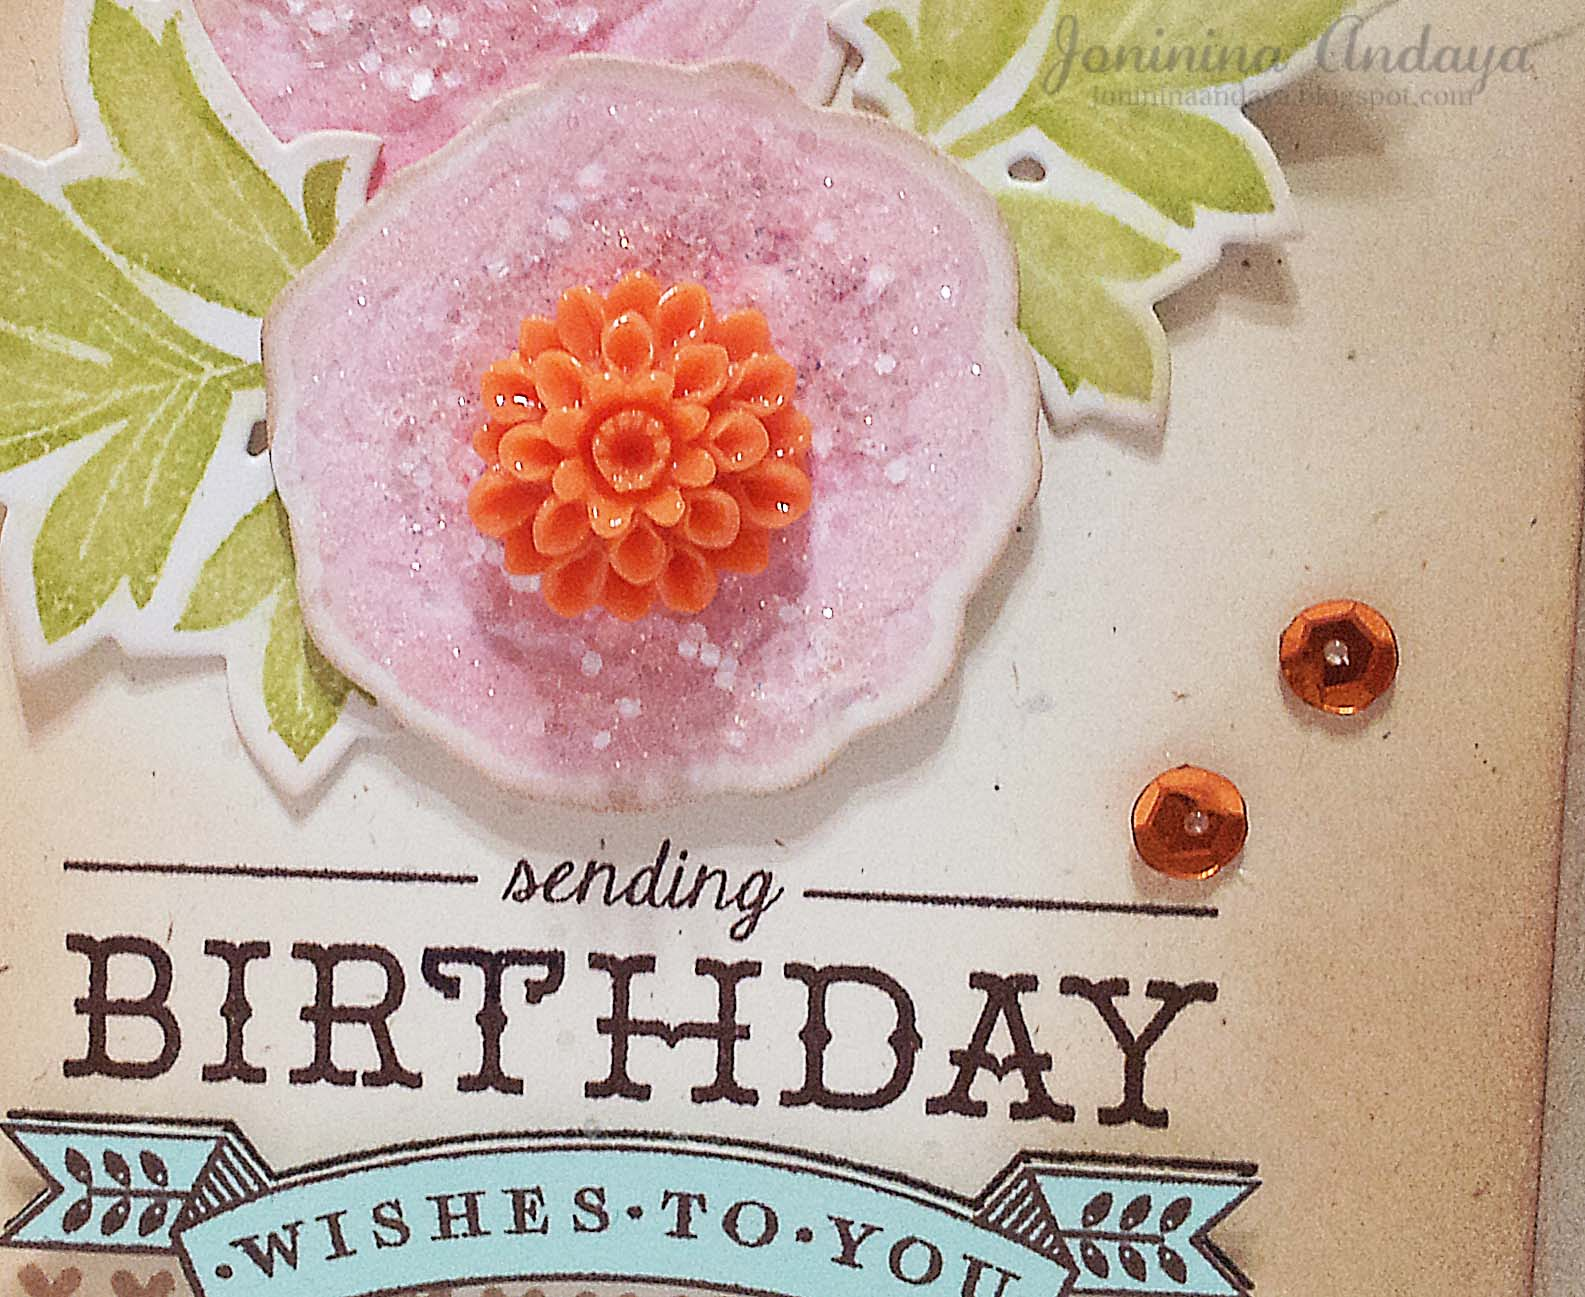 Papell With Love: Sending Birthday Wishes